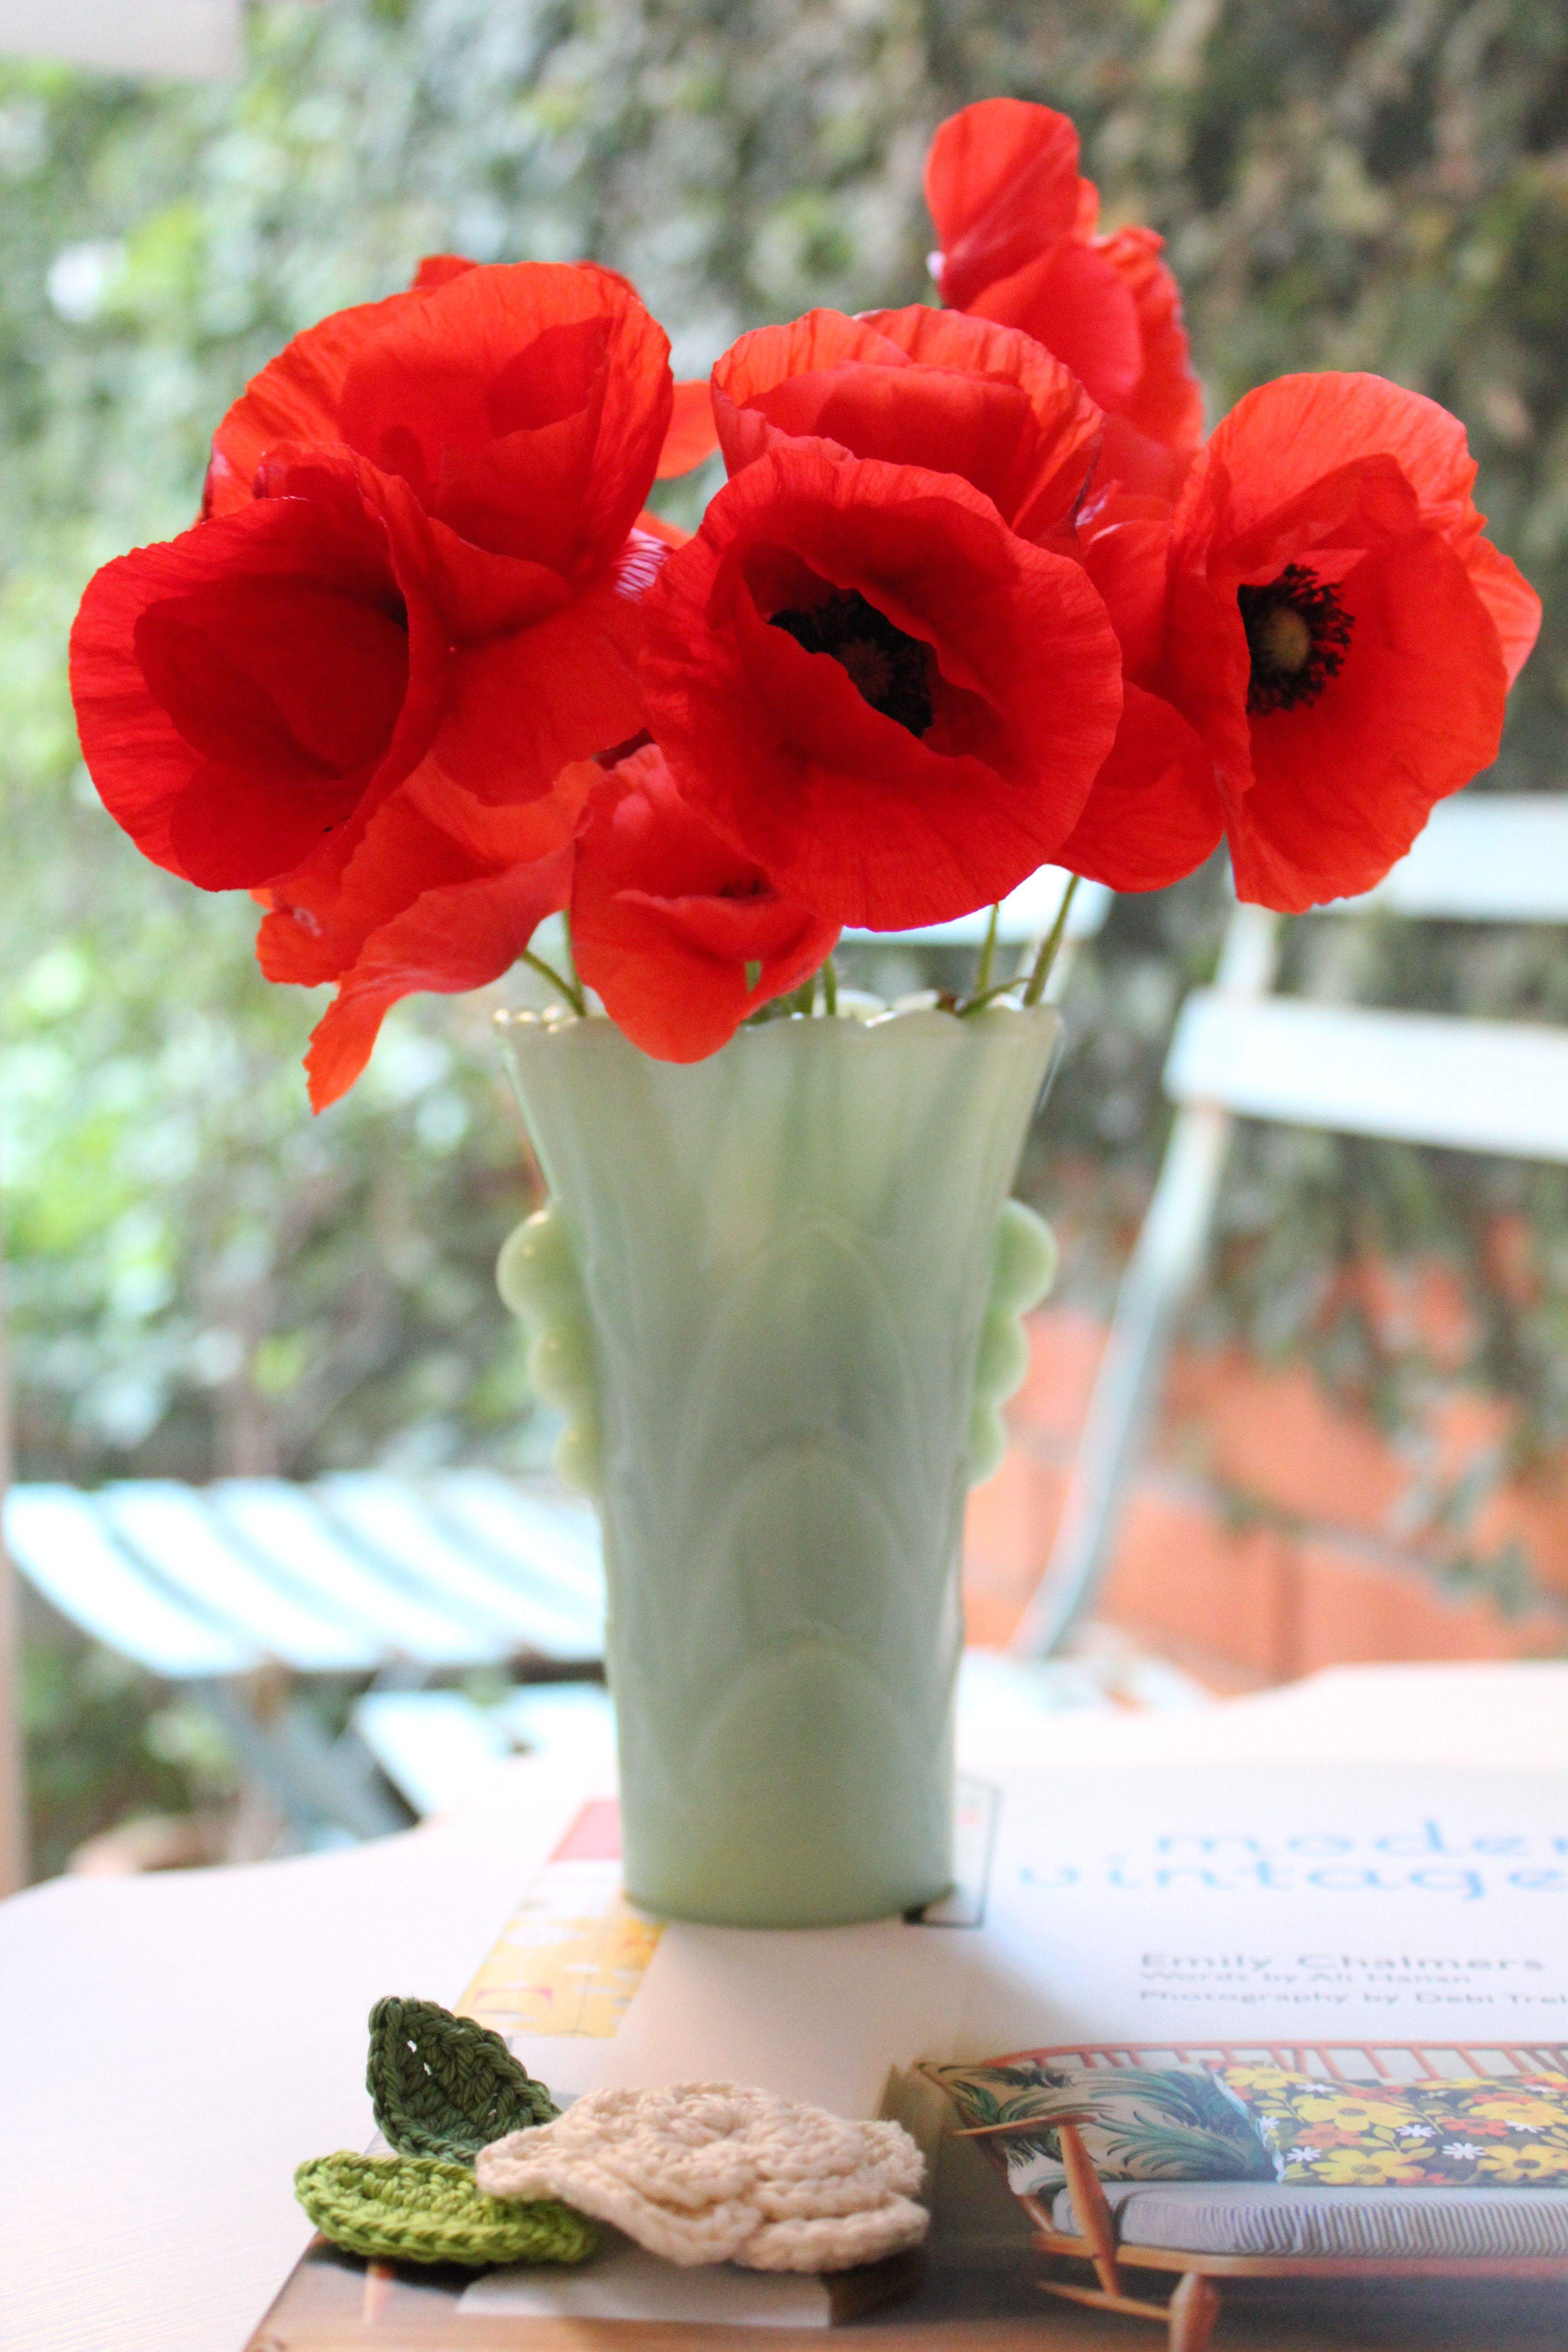 Wild Poppies In Jadite Vase Beautiful But Its Illegal To Pick